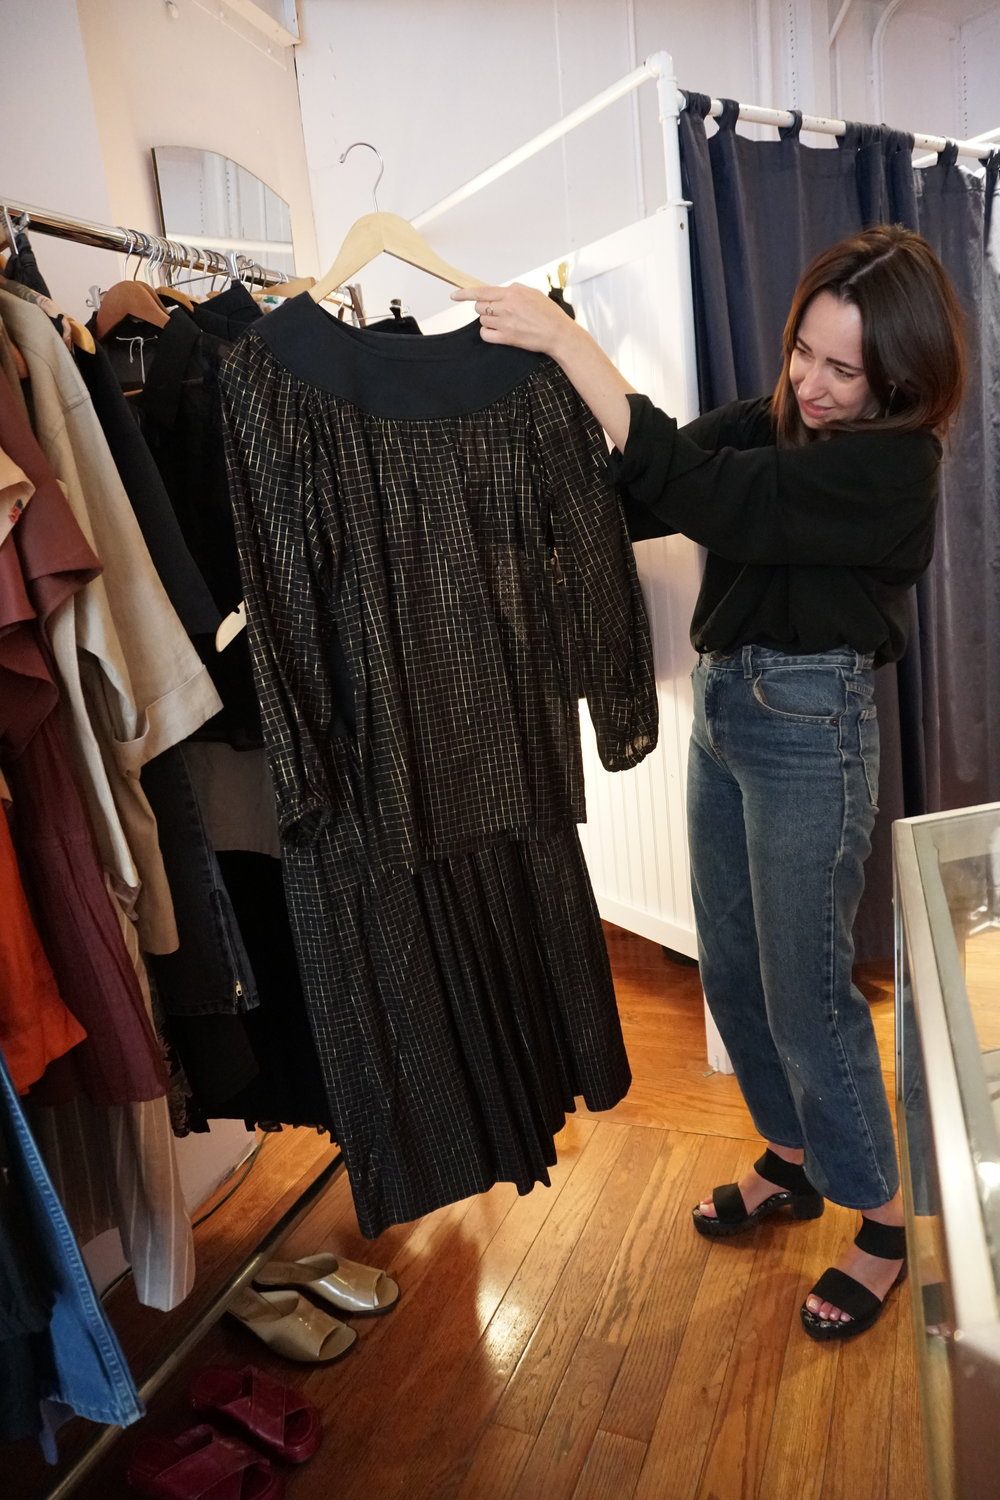 Horizons Best Vintage Clothing Stores in Williamsburg, Brooklyn, NYC The Travel Women